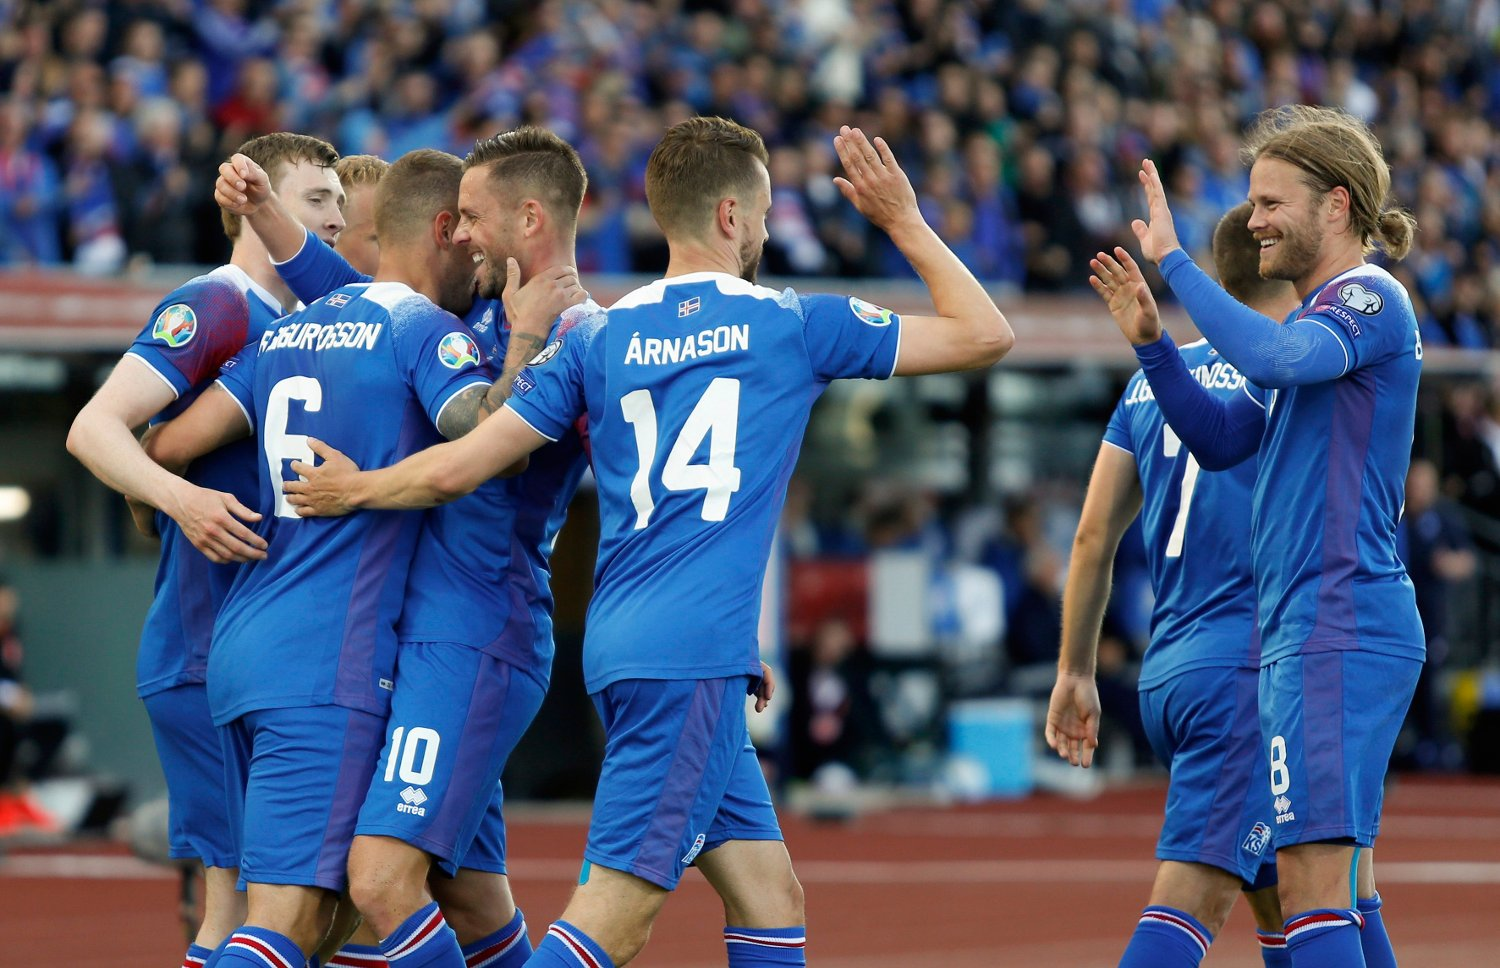 The Icelandic team celebrates Ragnar Sigurdsson's second goal against Turkey, during the Euro 2020 group H qualifying soccer match between Iceland and the Turkey at Laugardalsvollur stadium in Reykjavik, Iceland, Tuesday June 11, 2019.